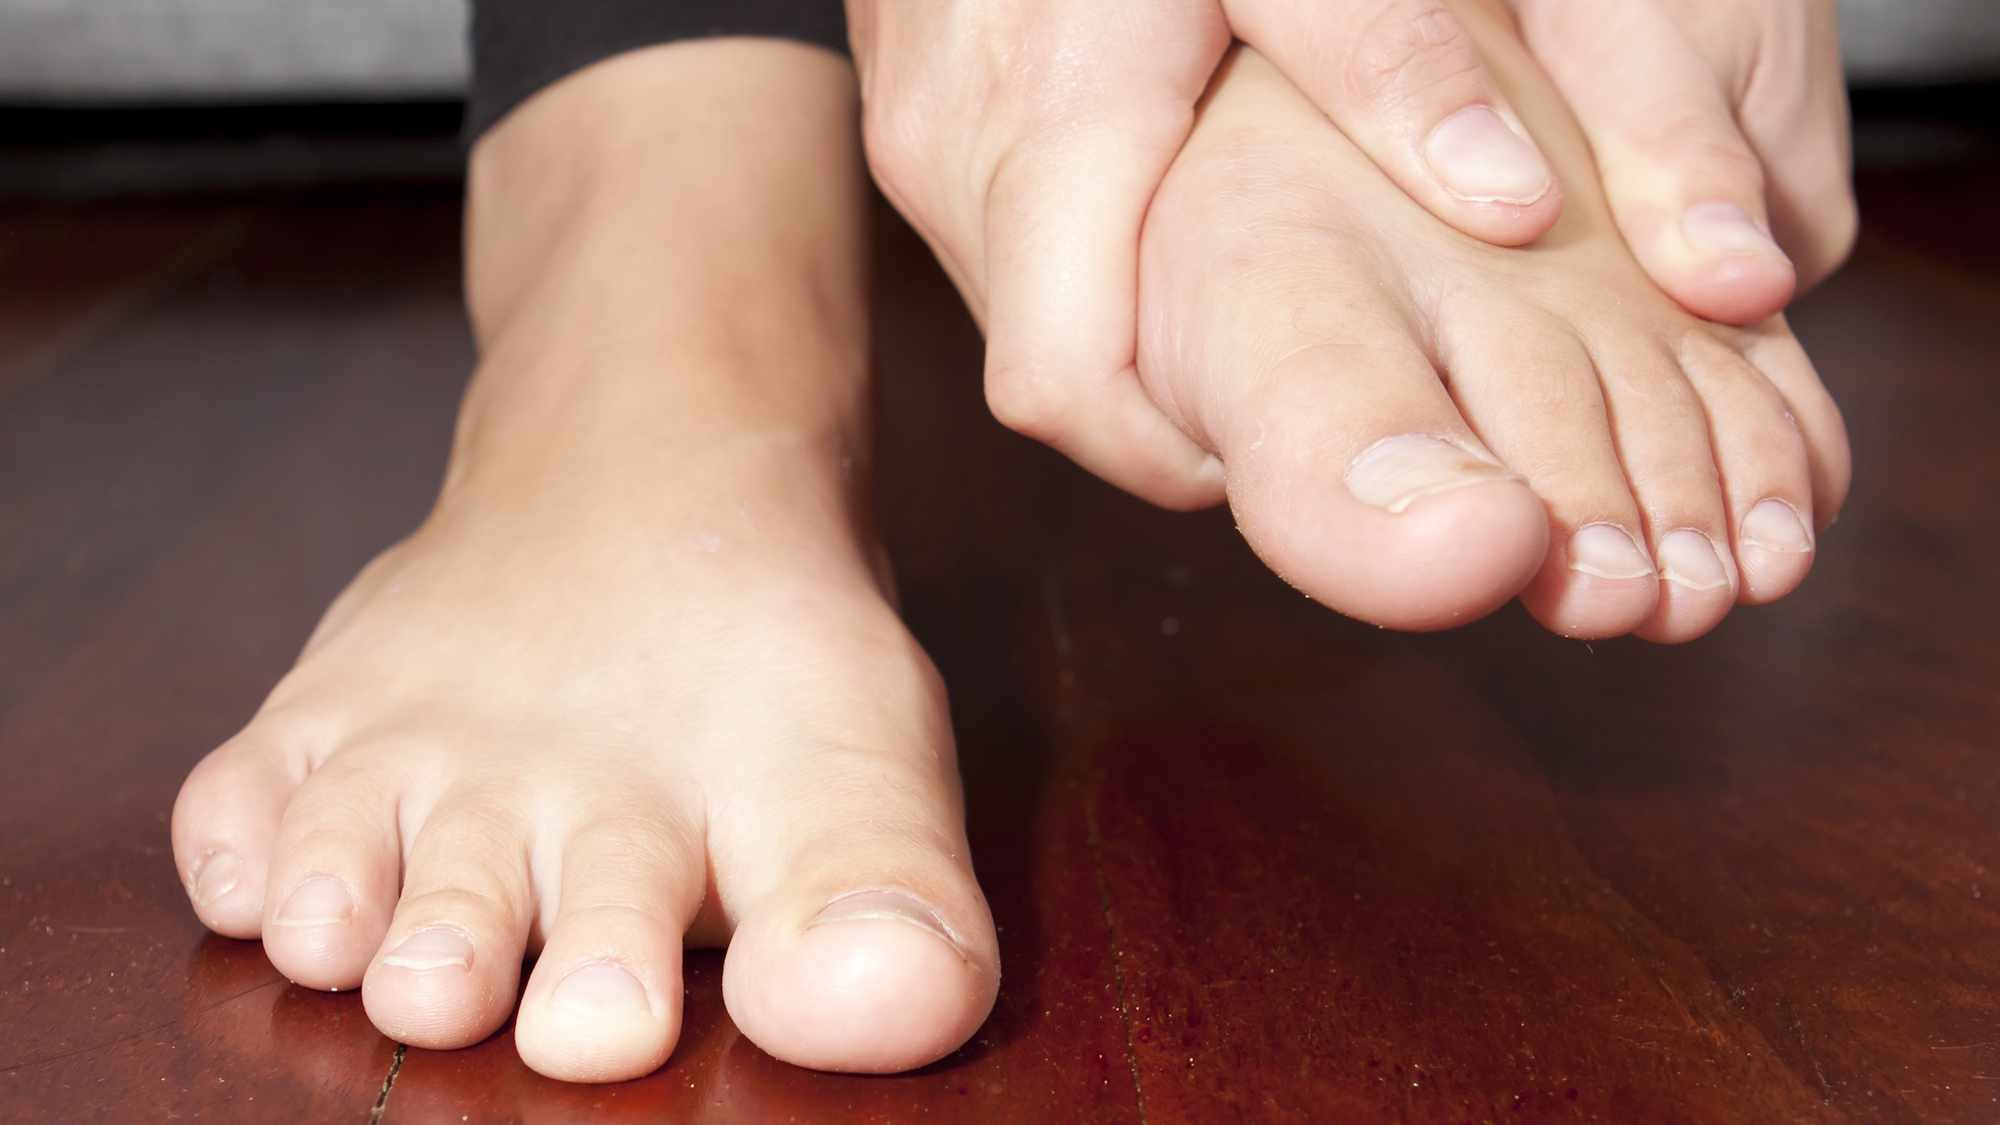 a closeup of person barefoot showing toes and two feet, one on the floor and the other held in the person's hands